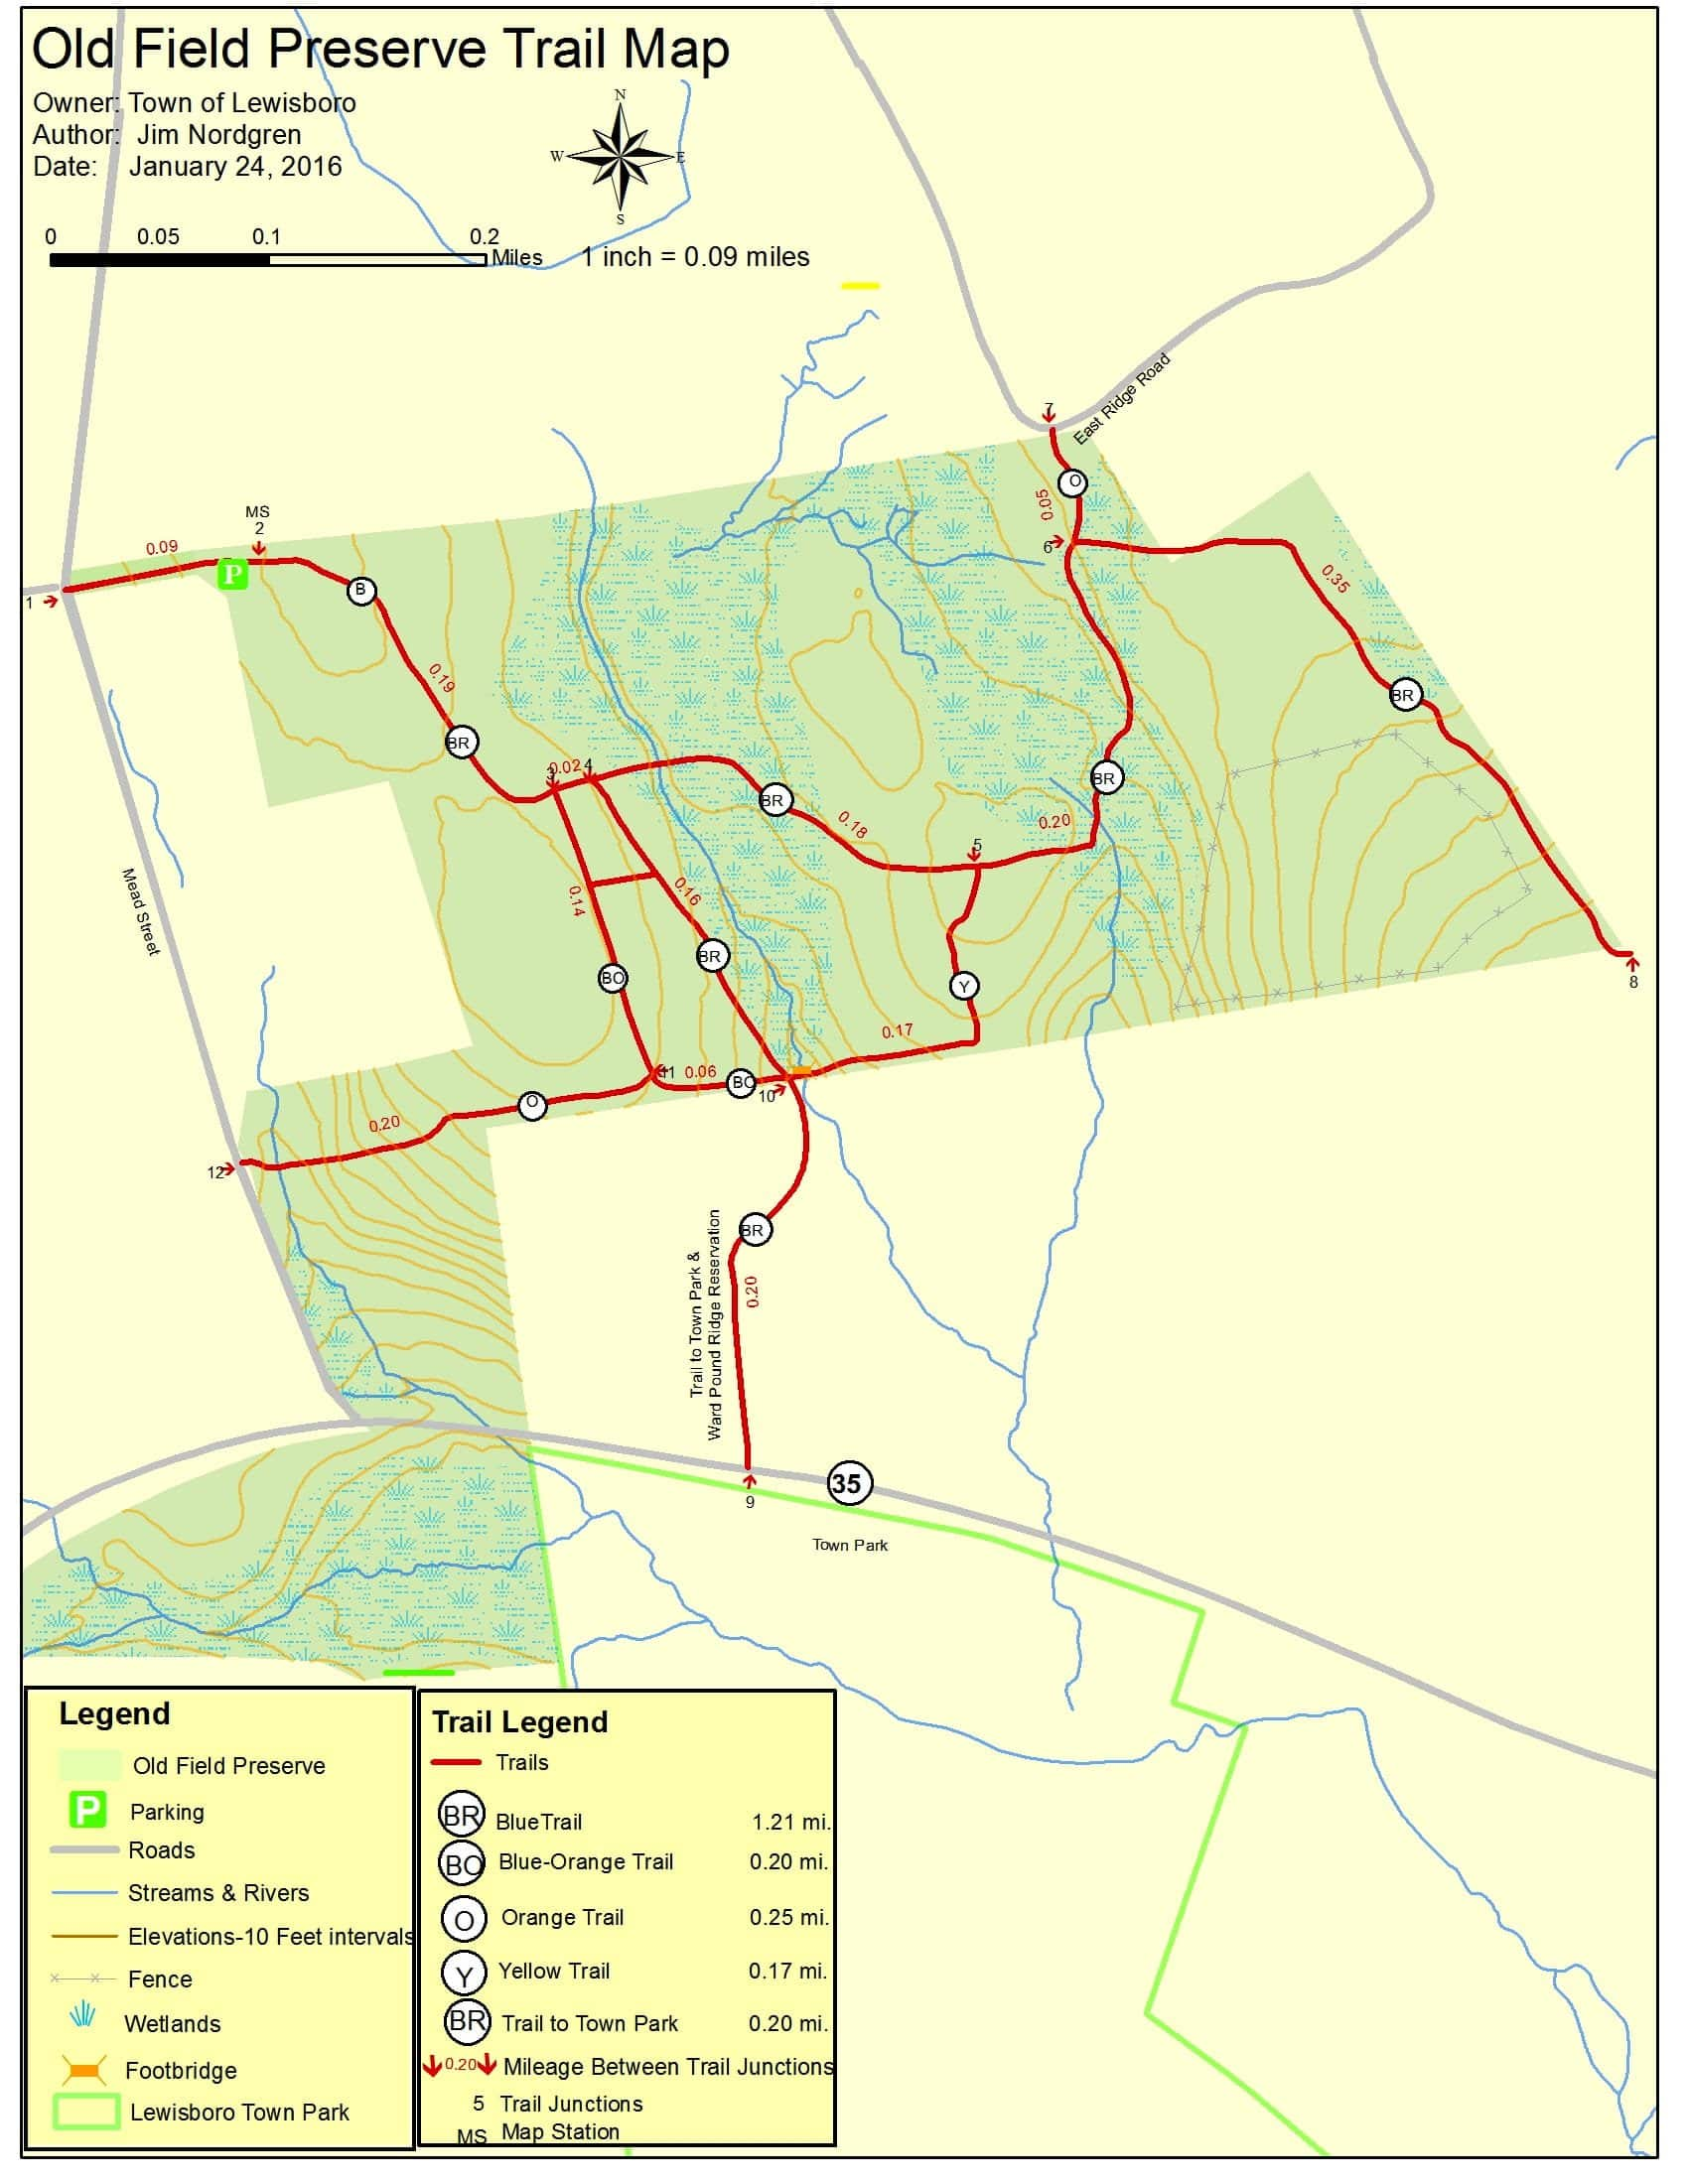 Old Field Preserve Trail Map